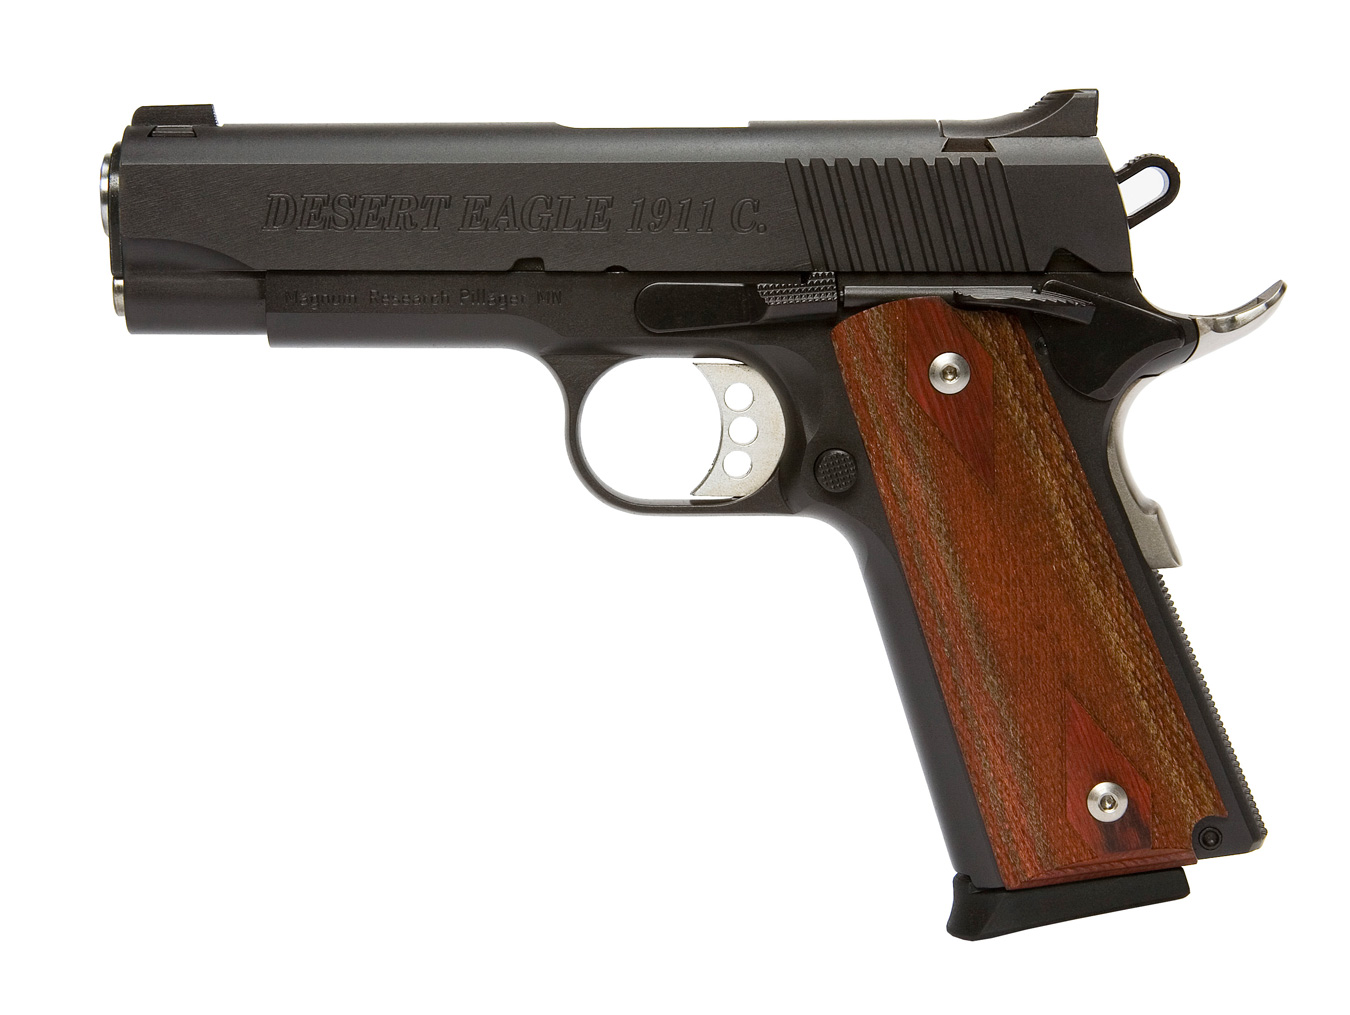 Baby Desert Eagle 1911 pistol left profile